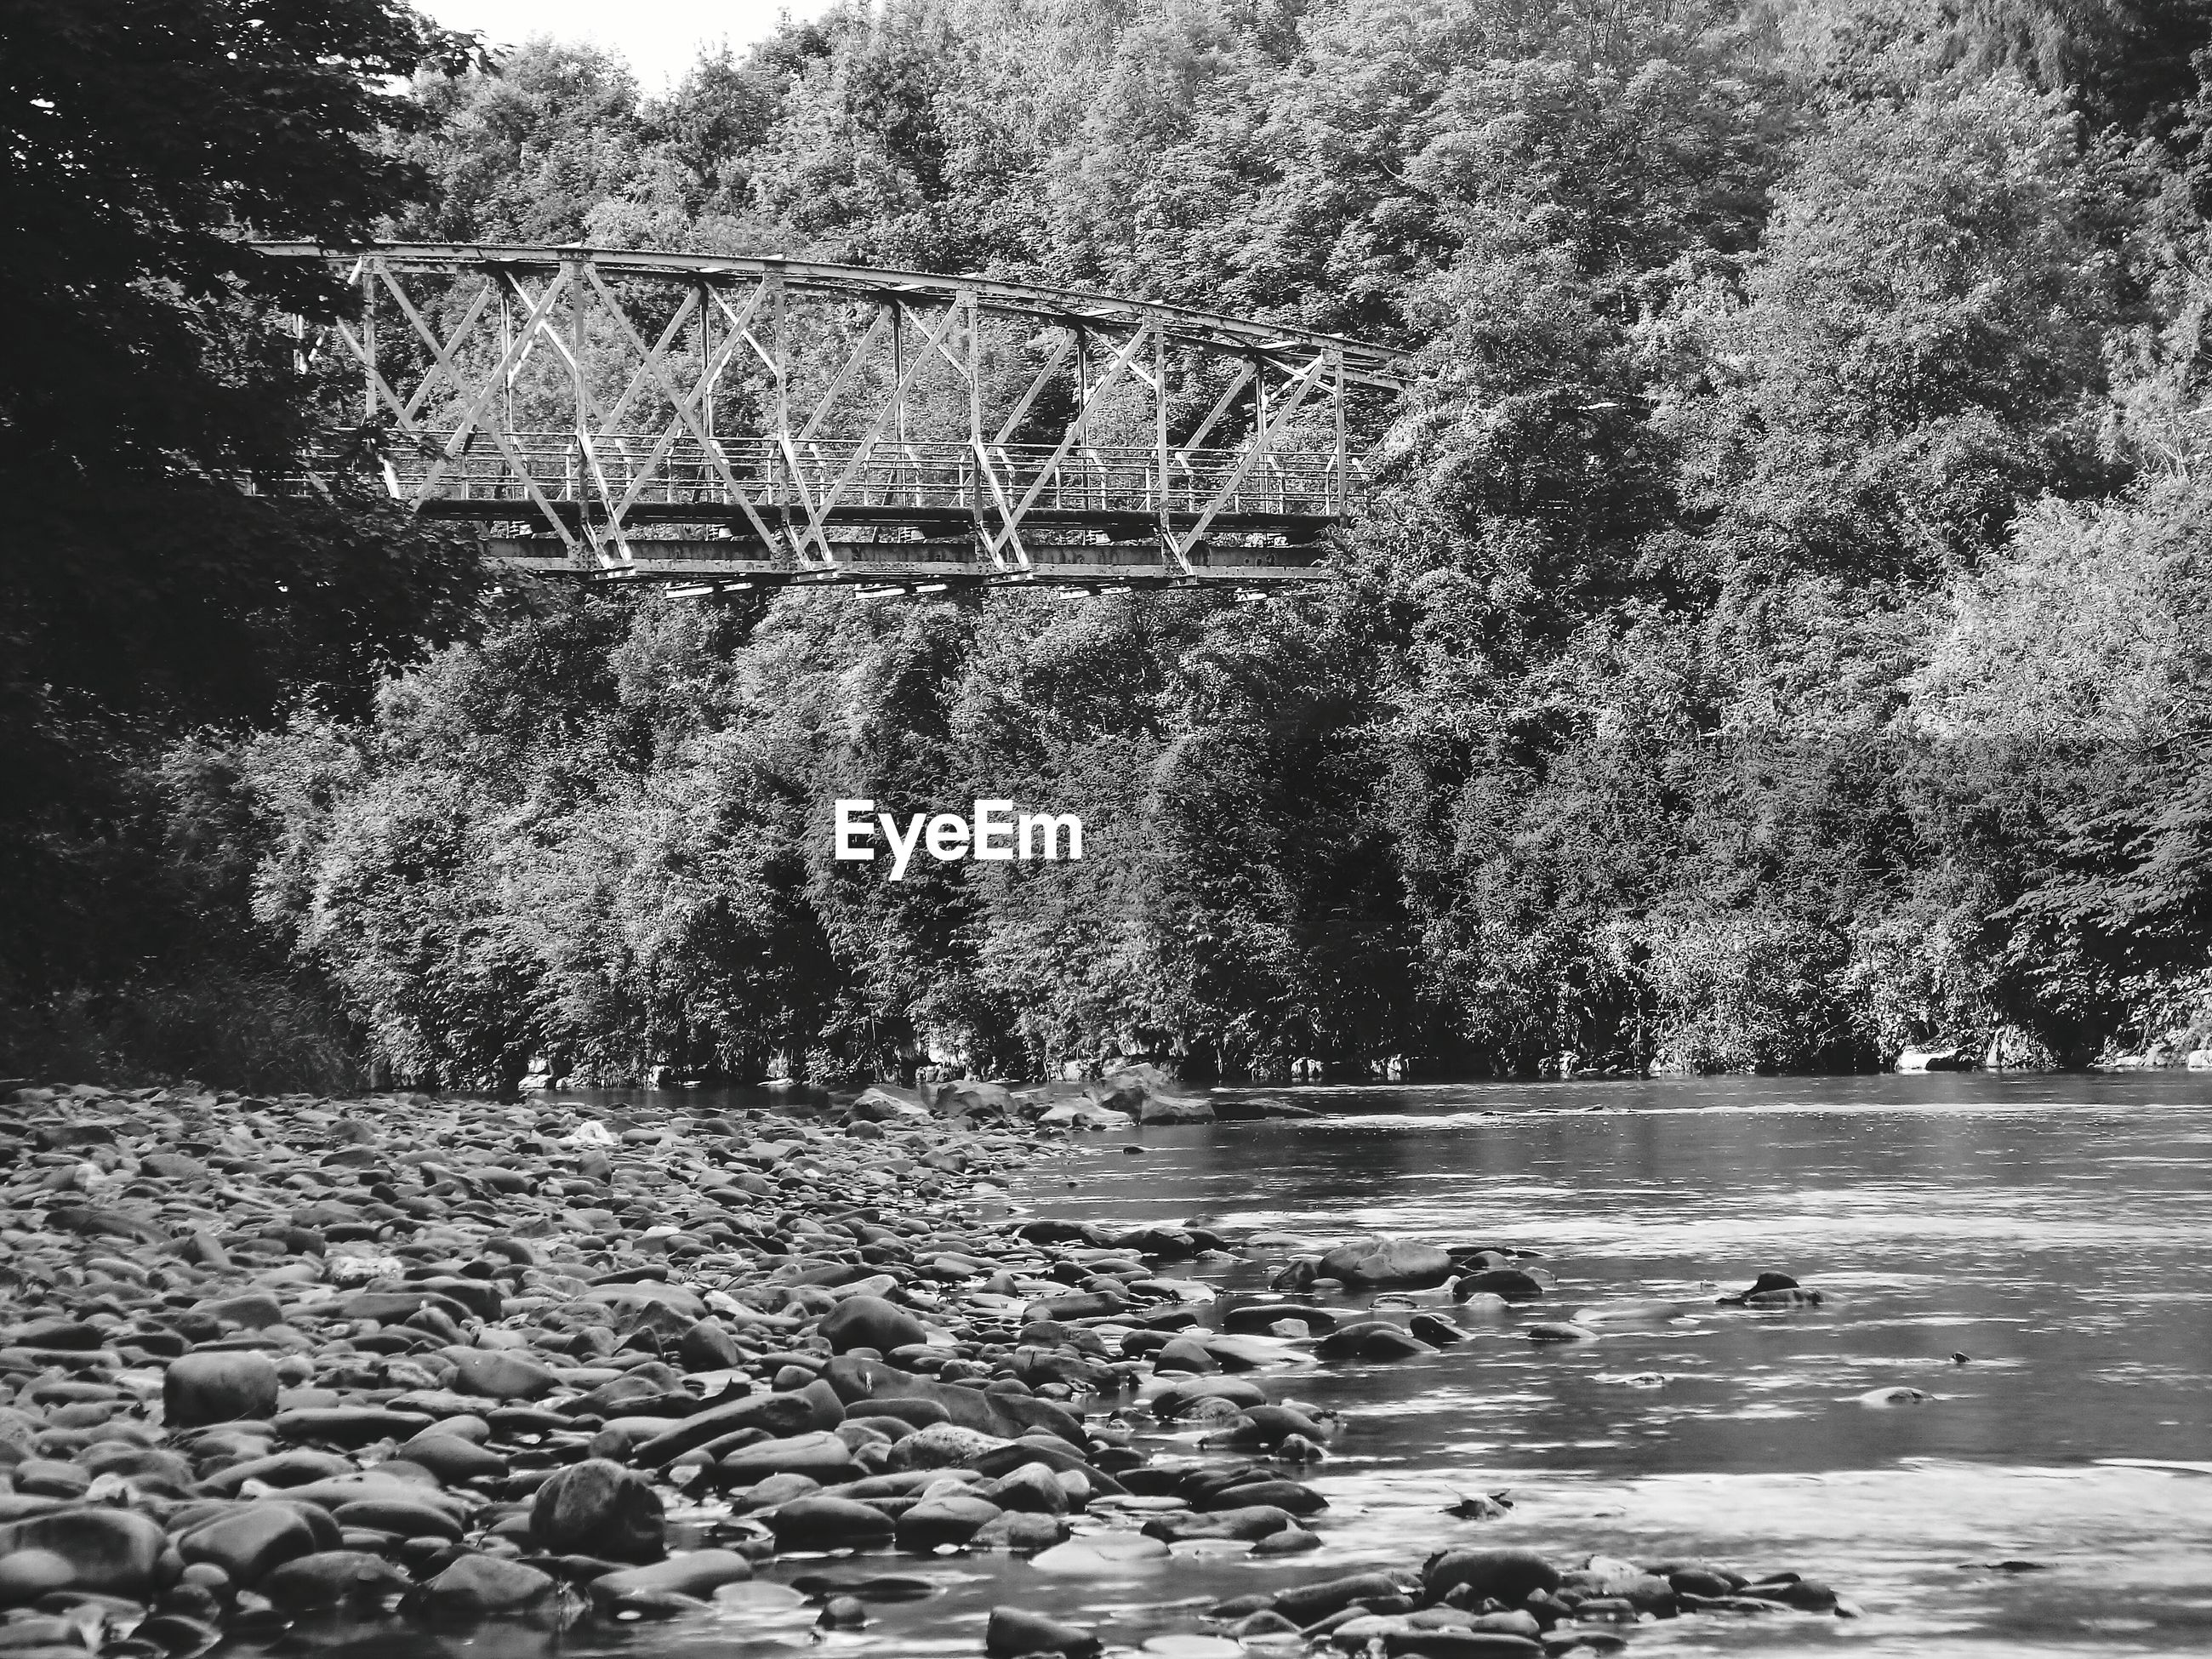 Bridge over pebbles on river amidst trees in forest